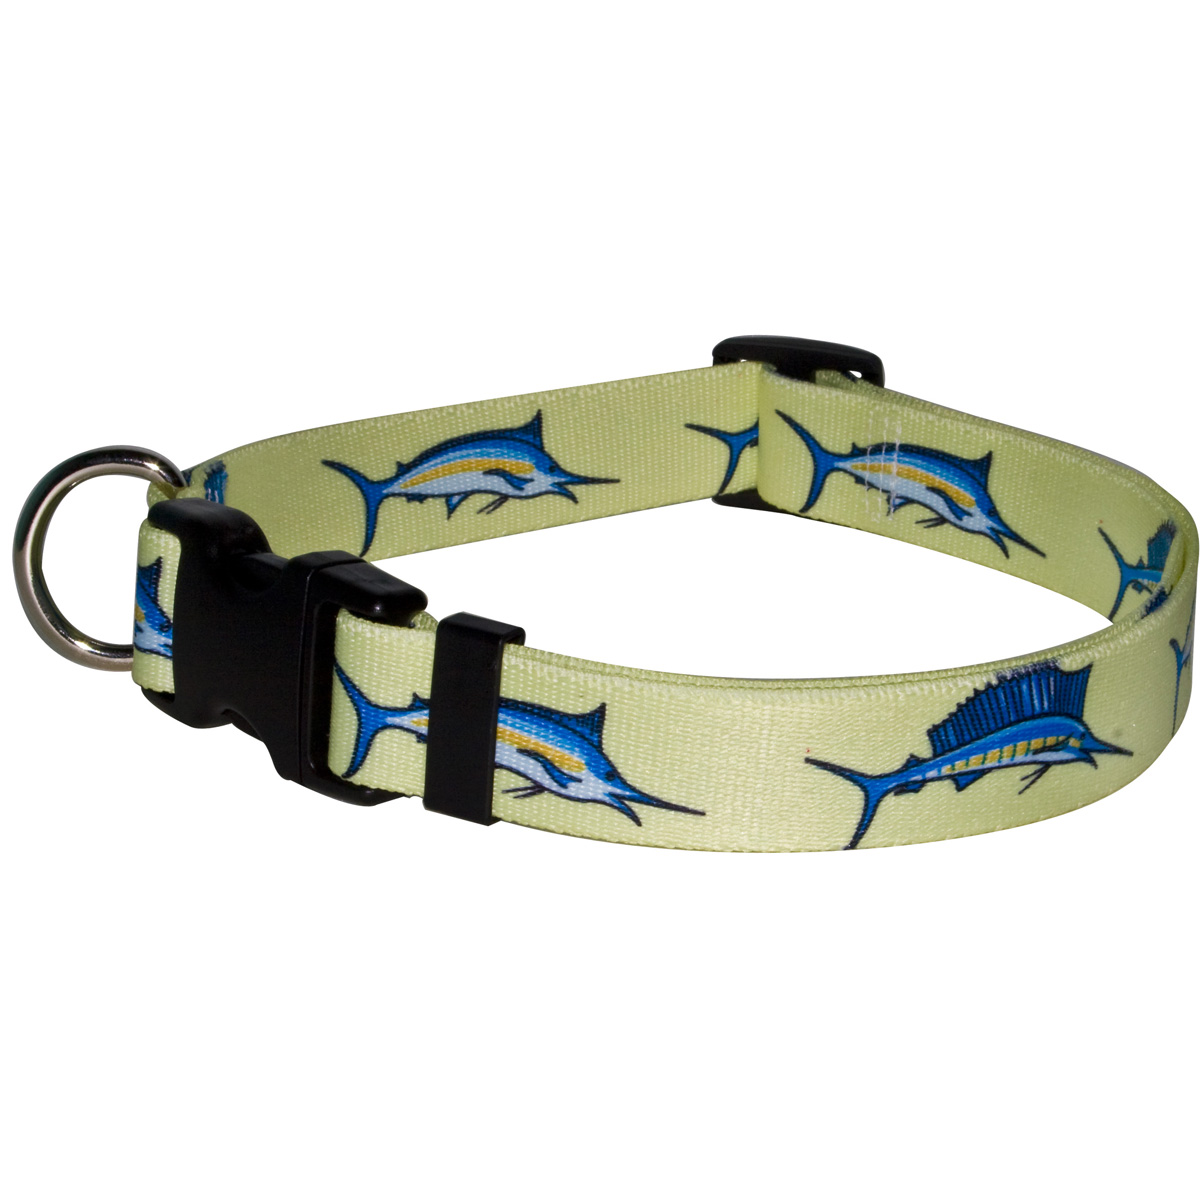 Bill Fish Standard Collar